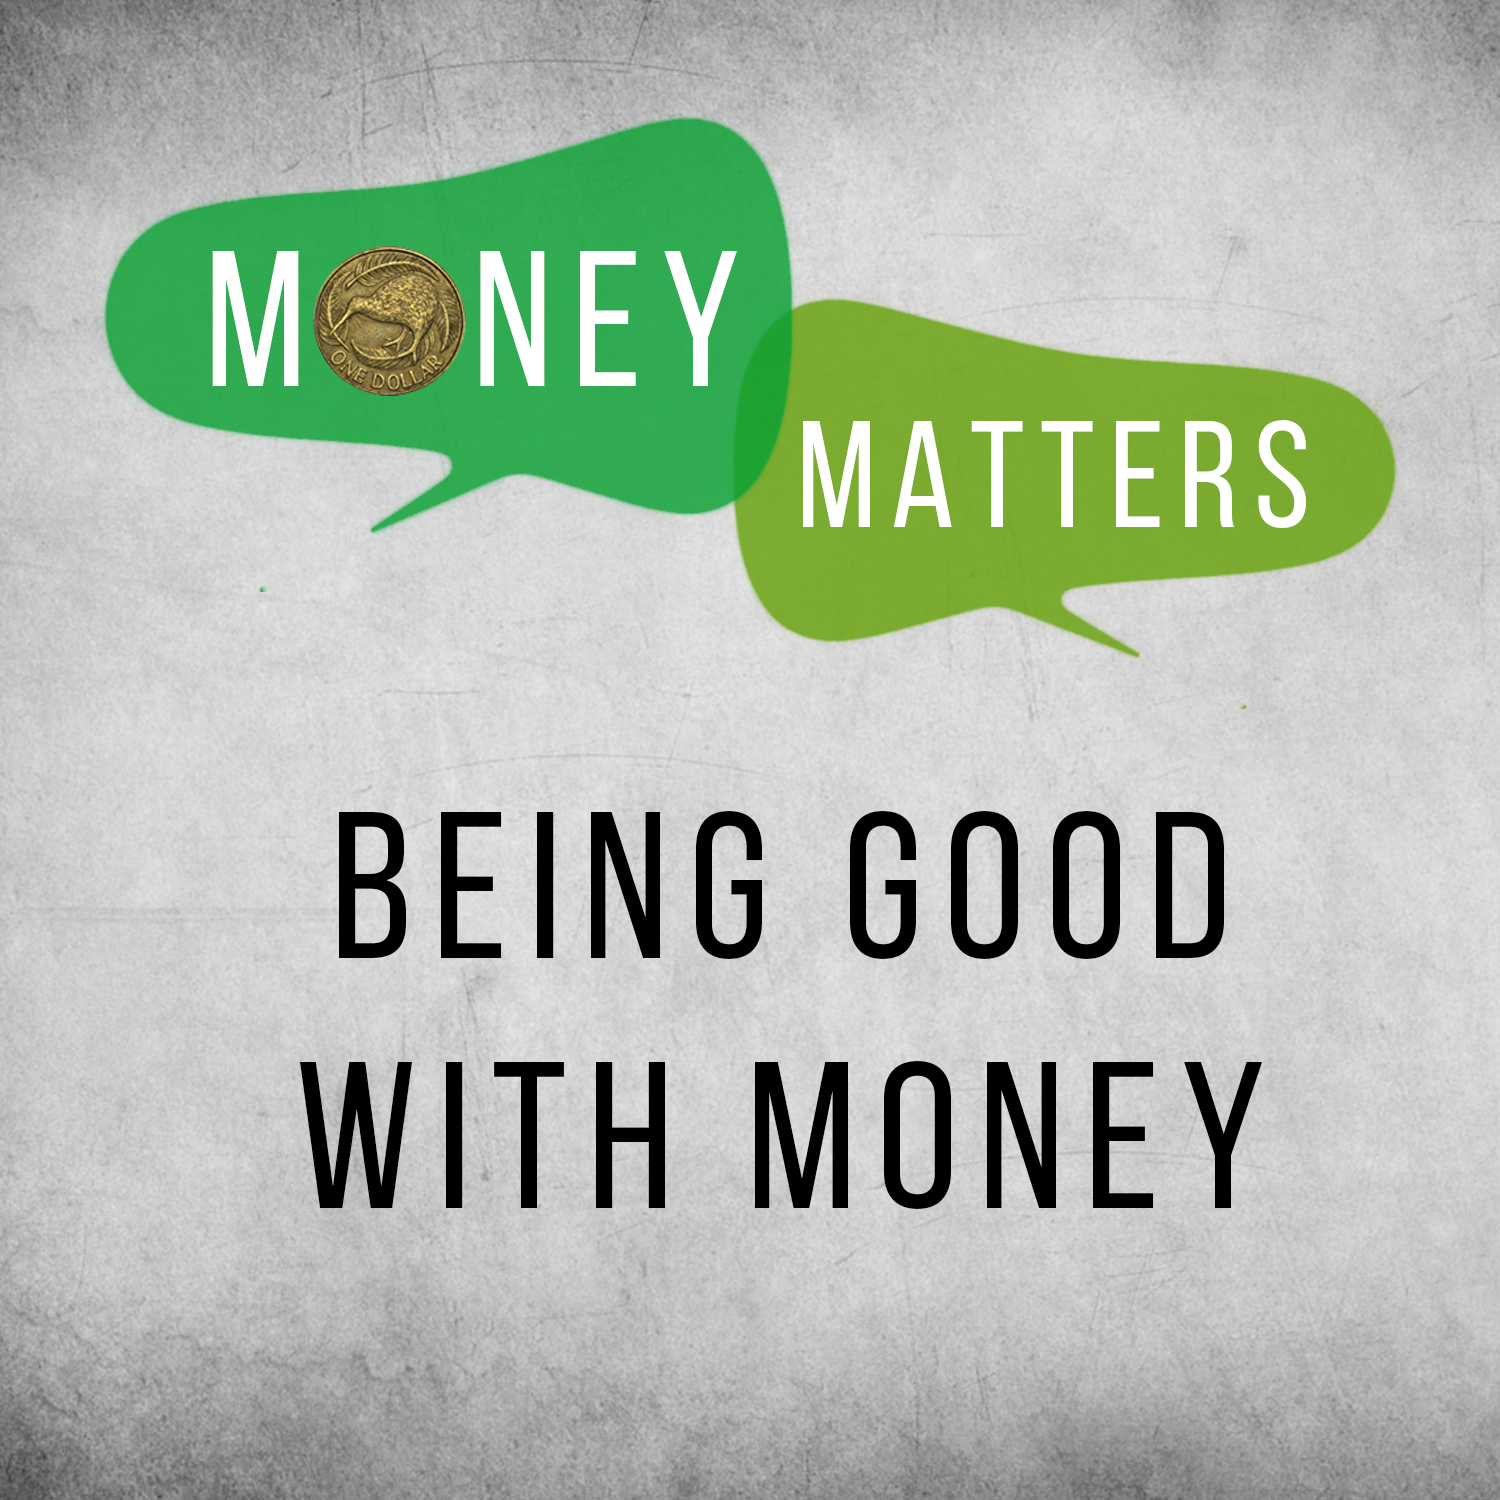 Being Good With Money